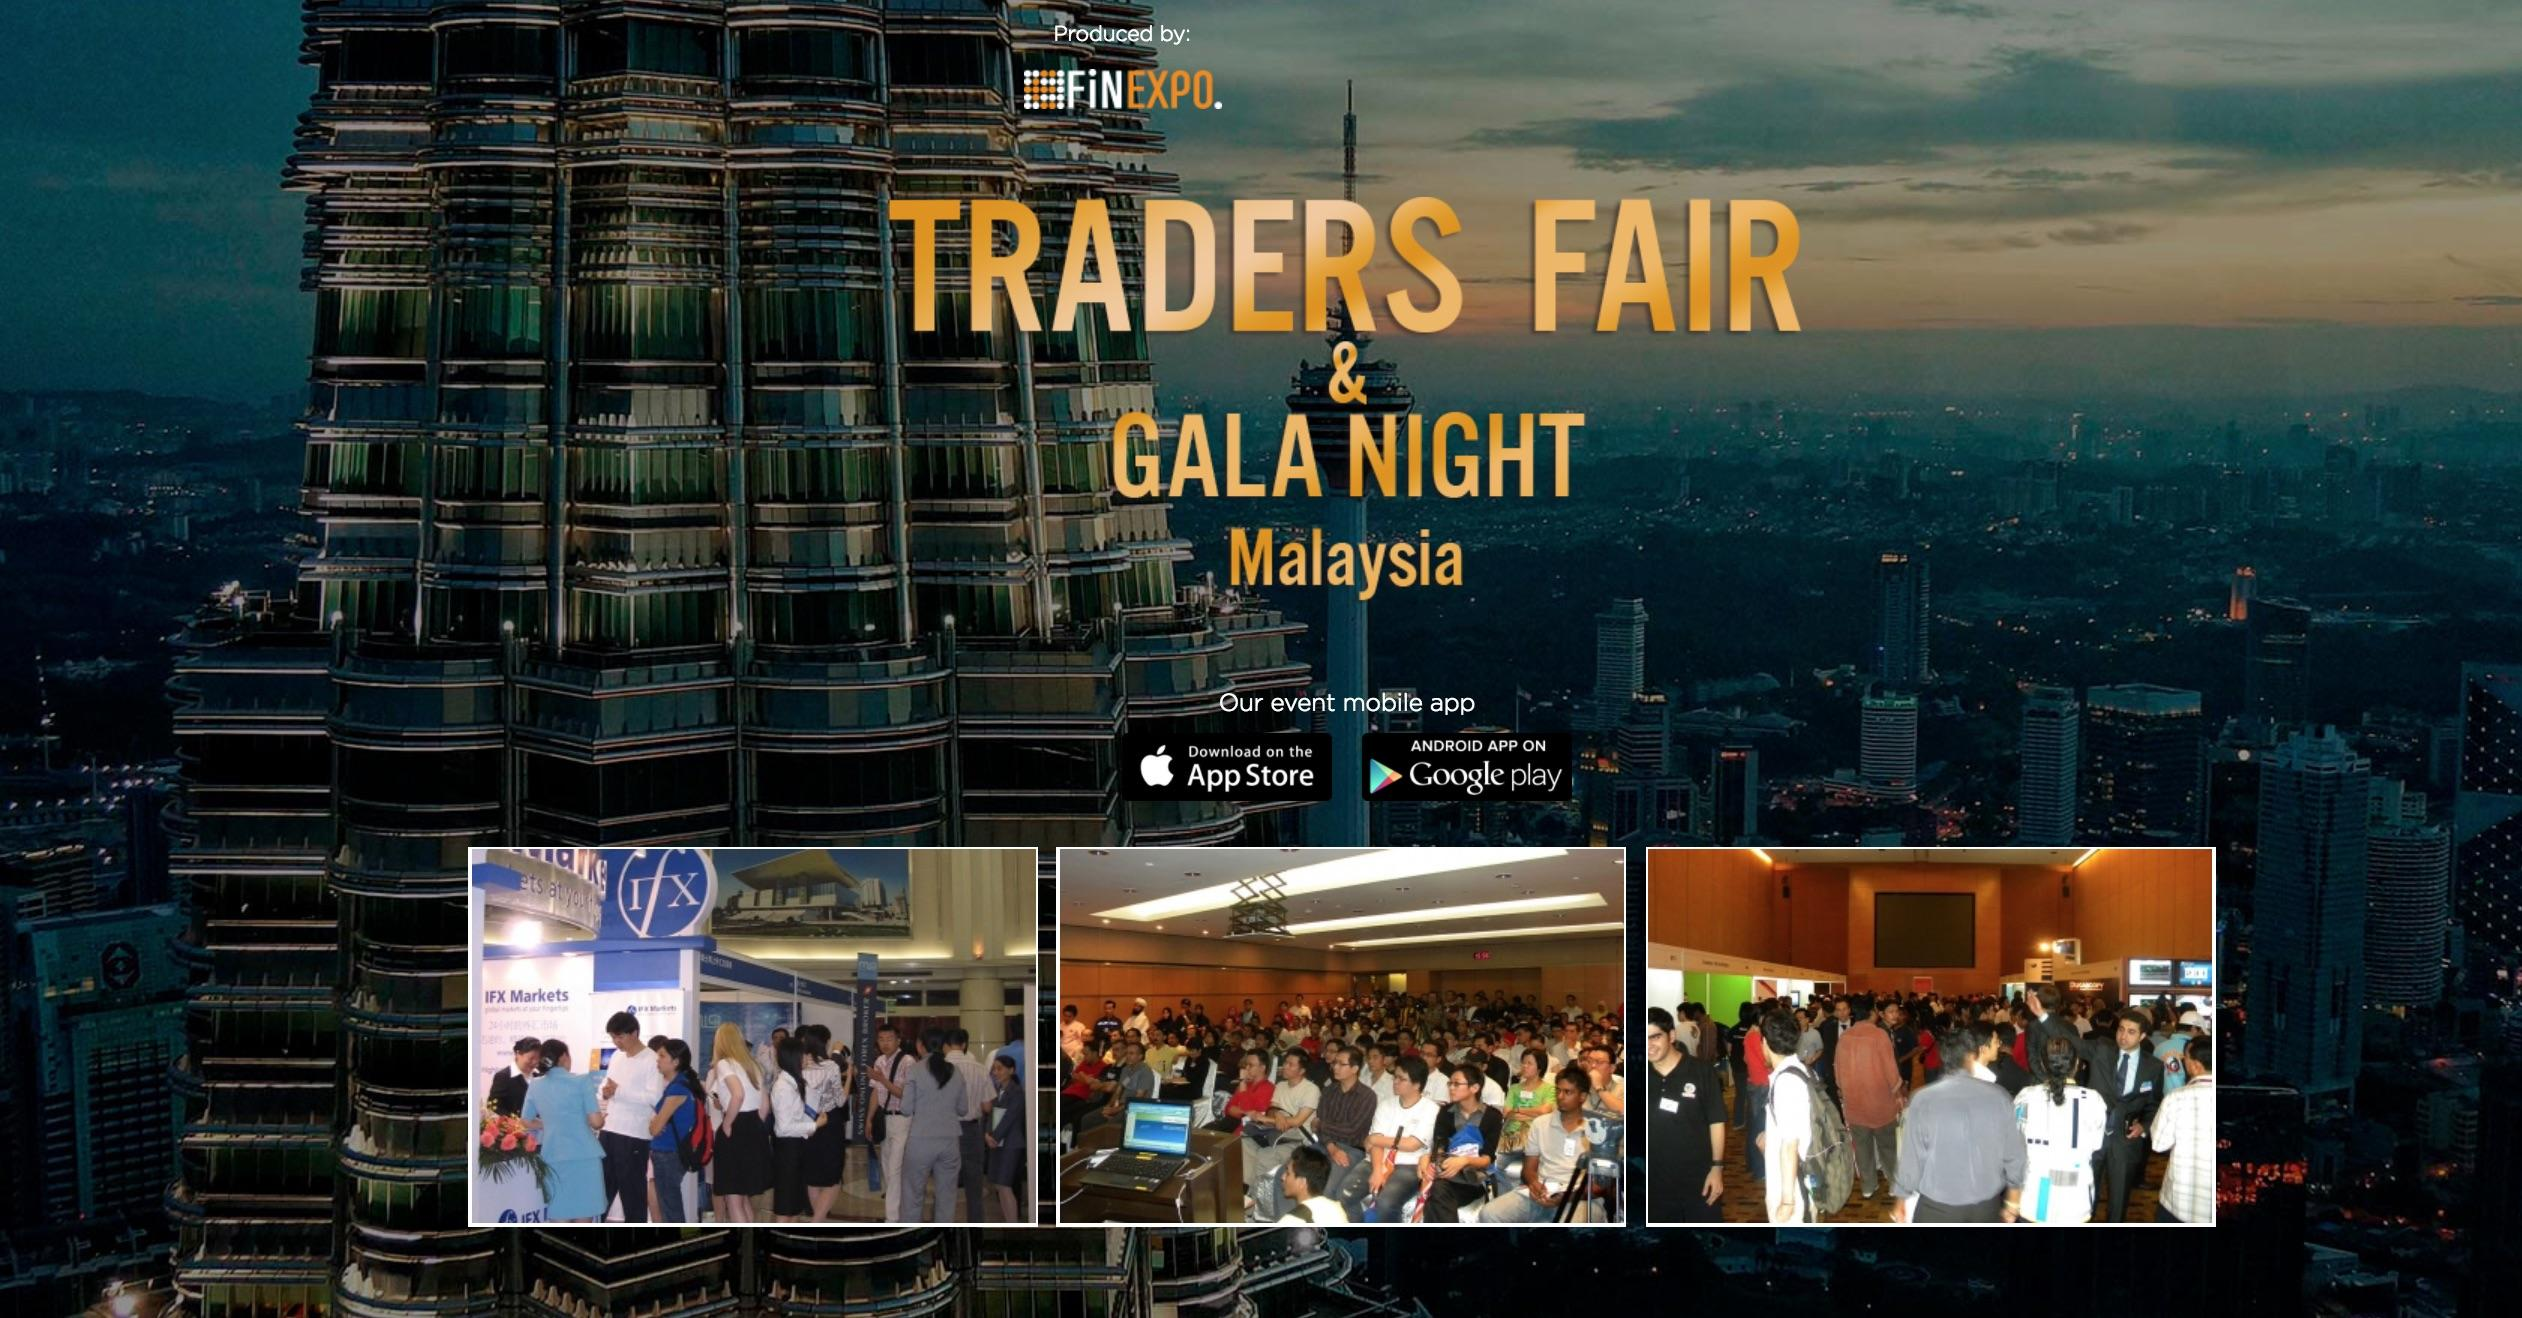 Traders Fair 2018 - Malaysia (Financial Event